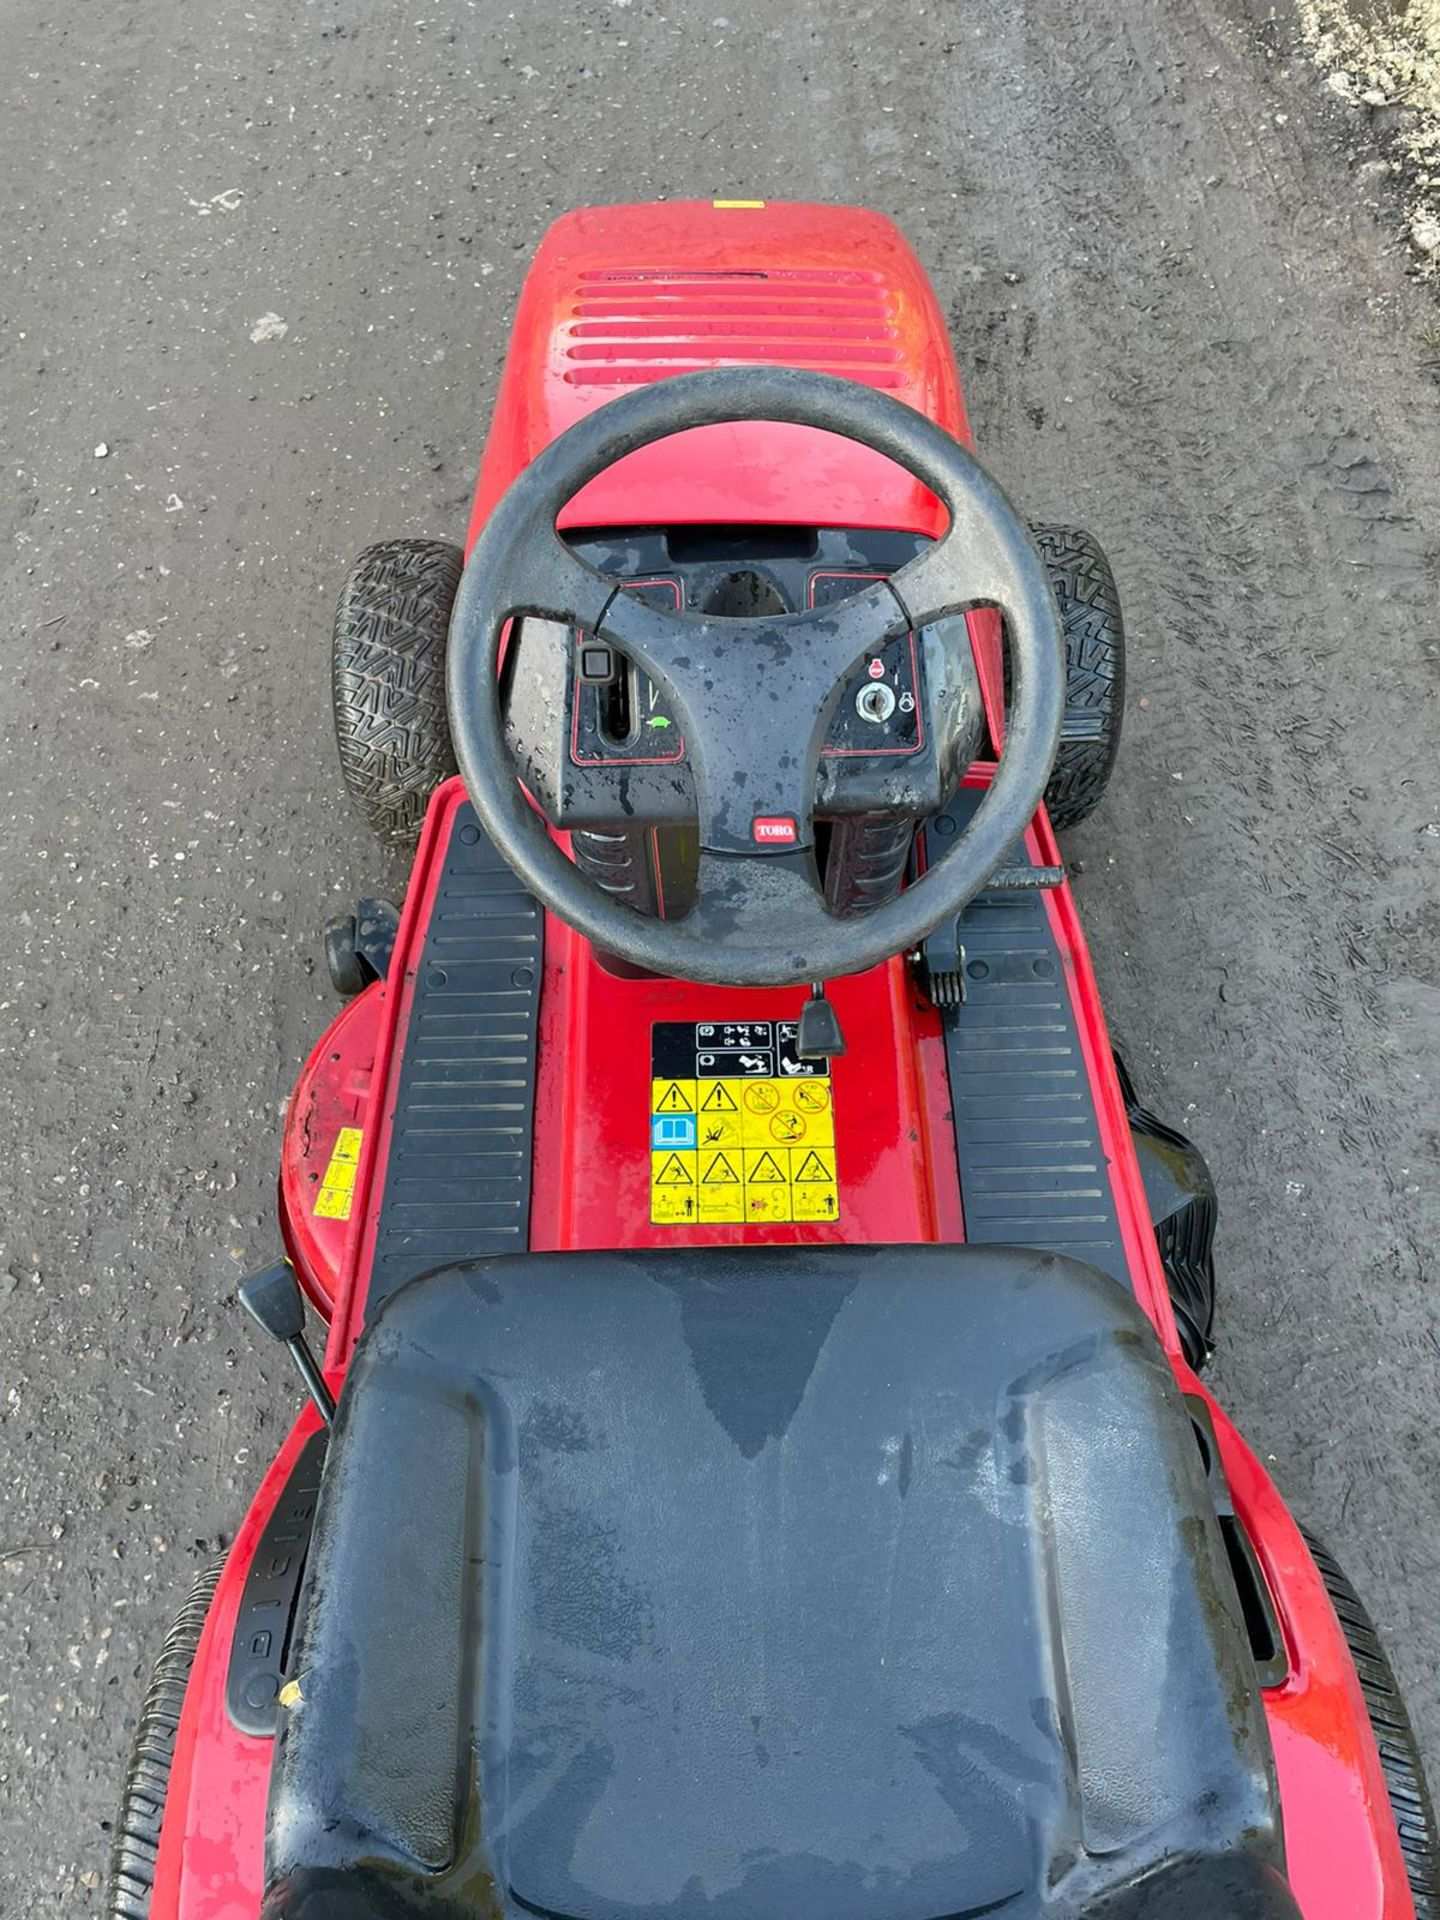 TORO 14-38 HXL RIDE ON MOWER, RUNS, DRIVES AND CUTS, CLEAN MACHINE *NO VAT* - Image 3 of 6